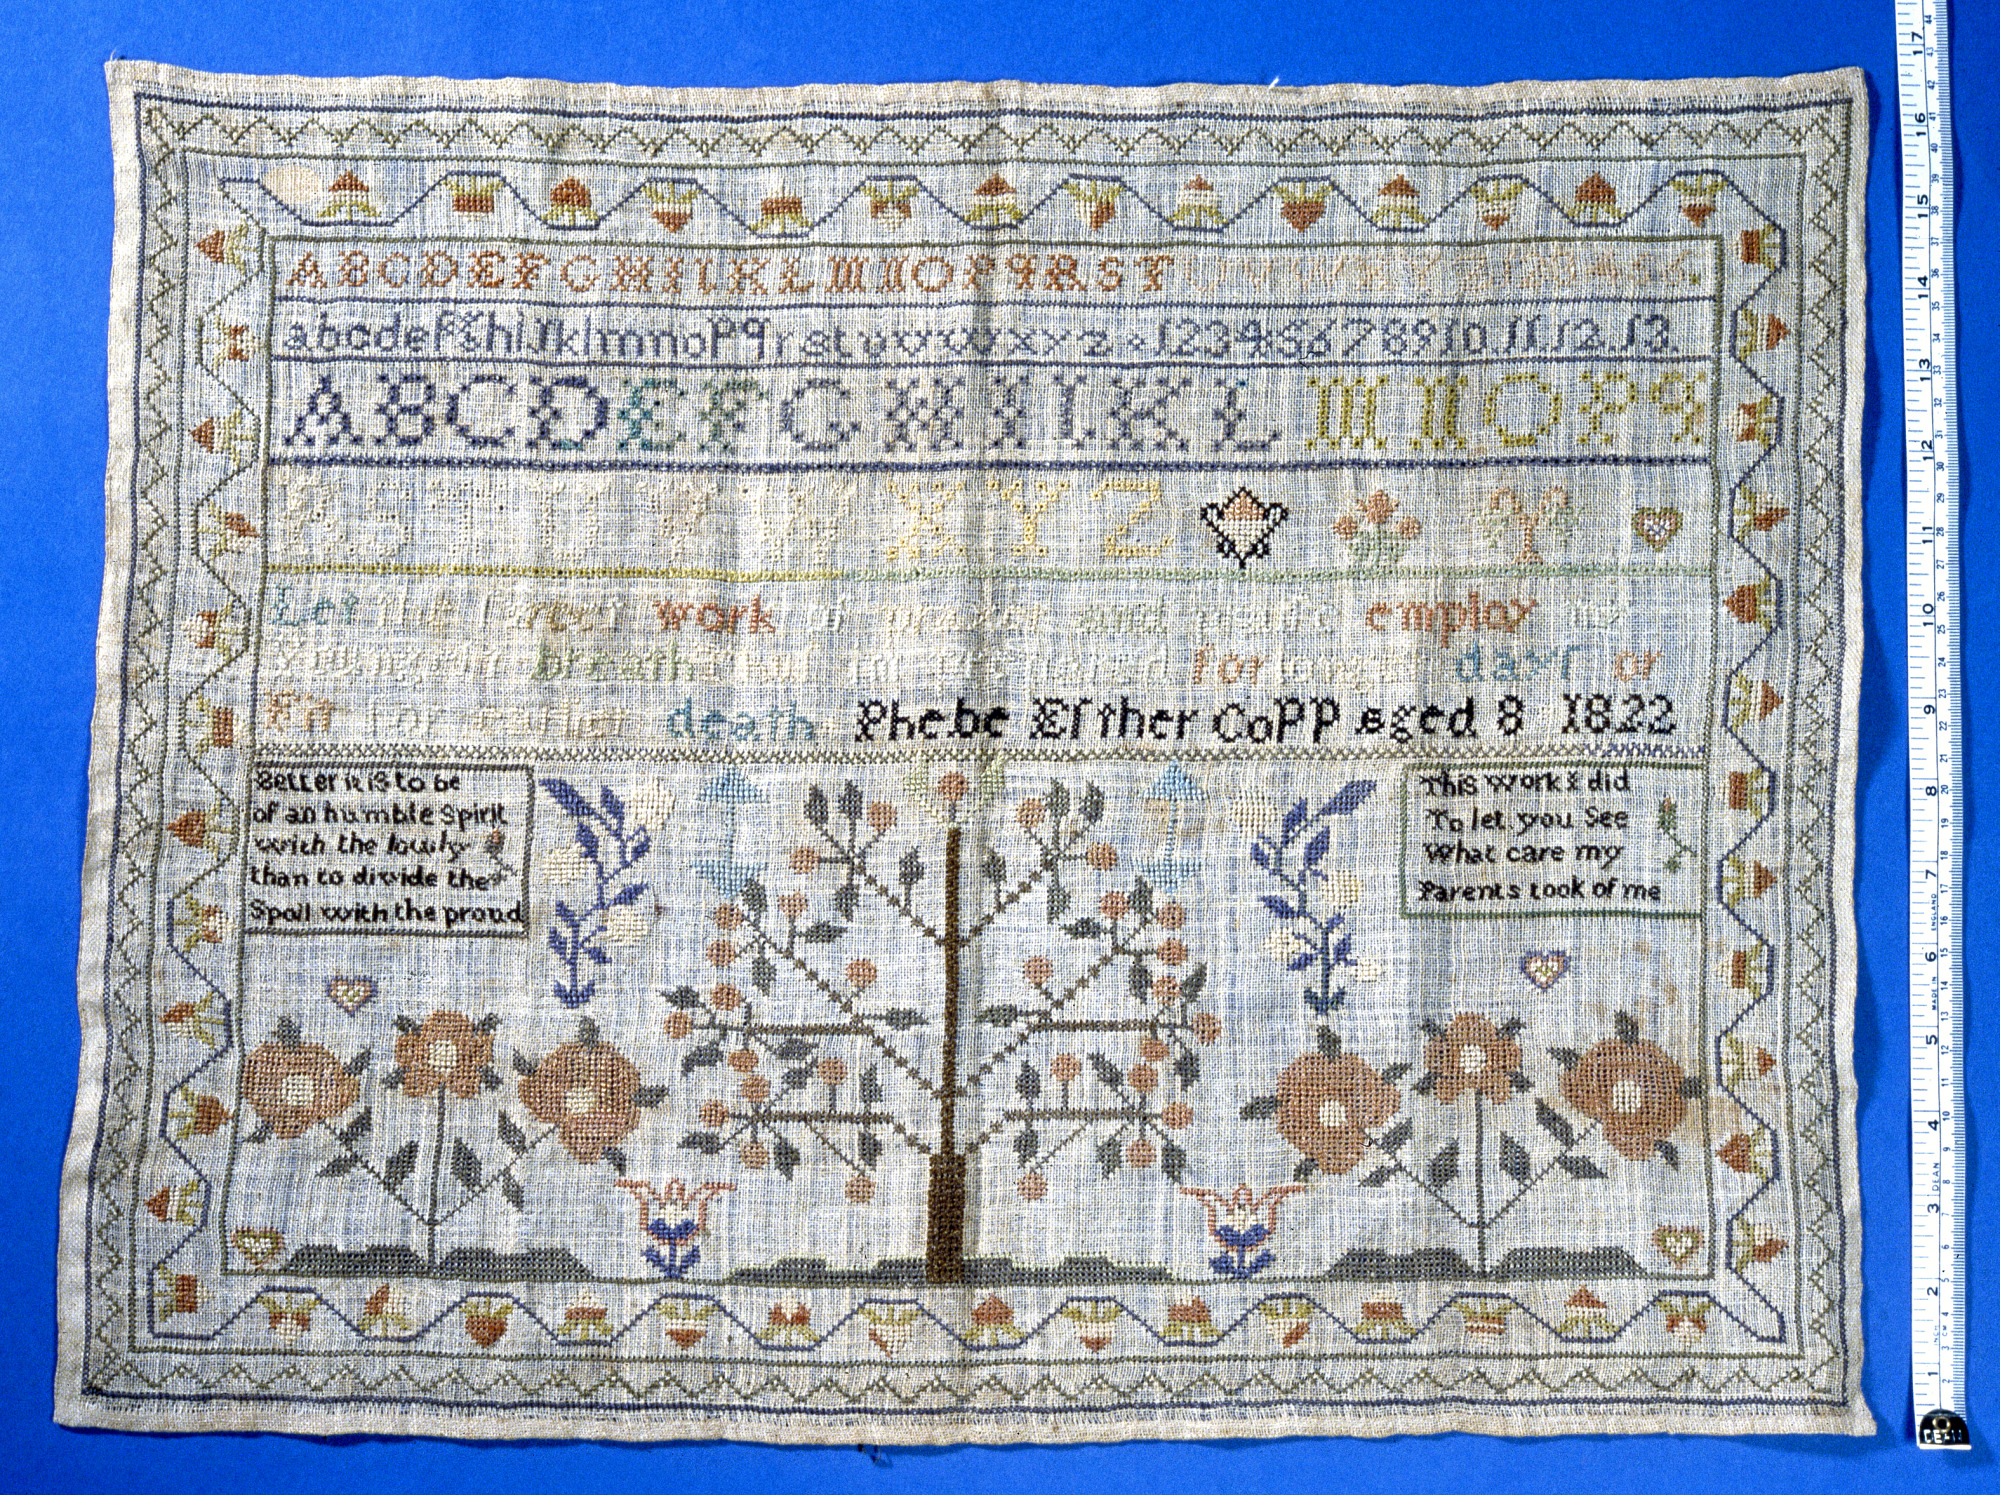 Phebe Esther Copp's sampler